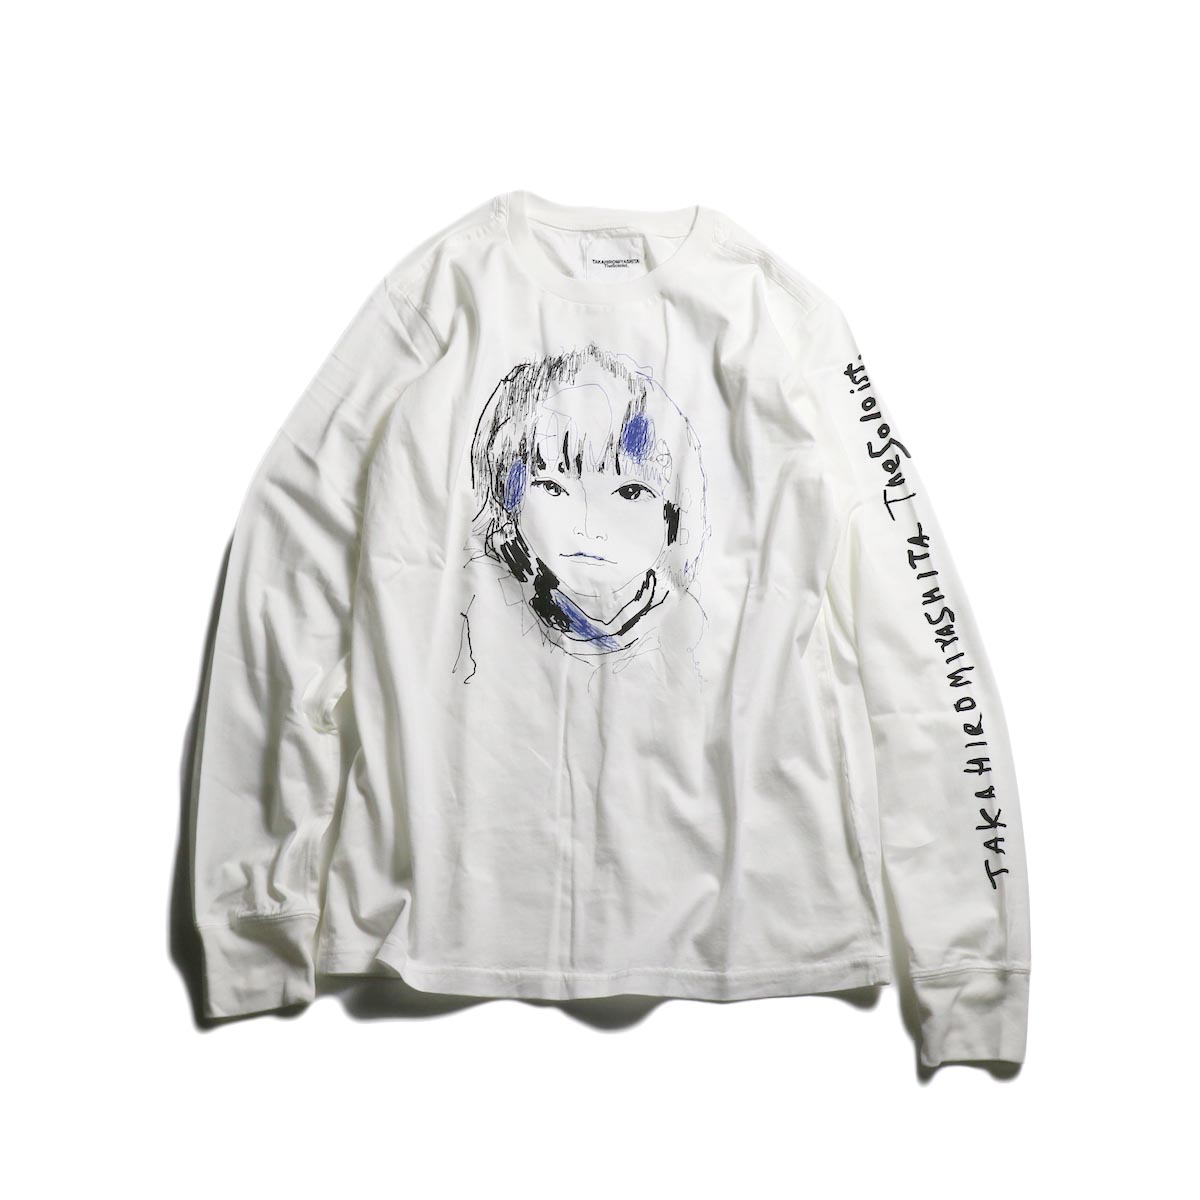 The Soloist / sc.0045AW19 OSCAR BY LEVI (long sleeve) -White